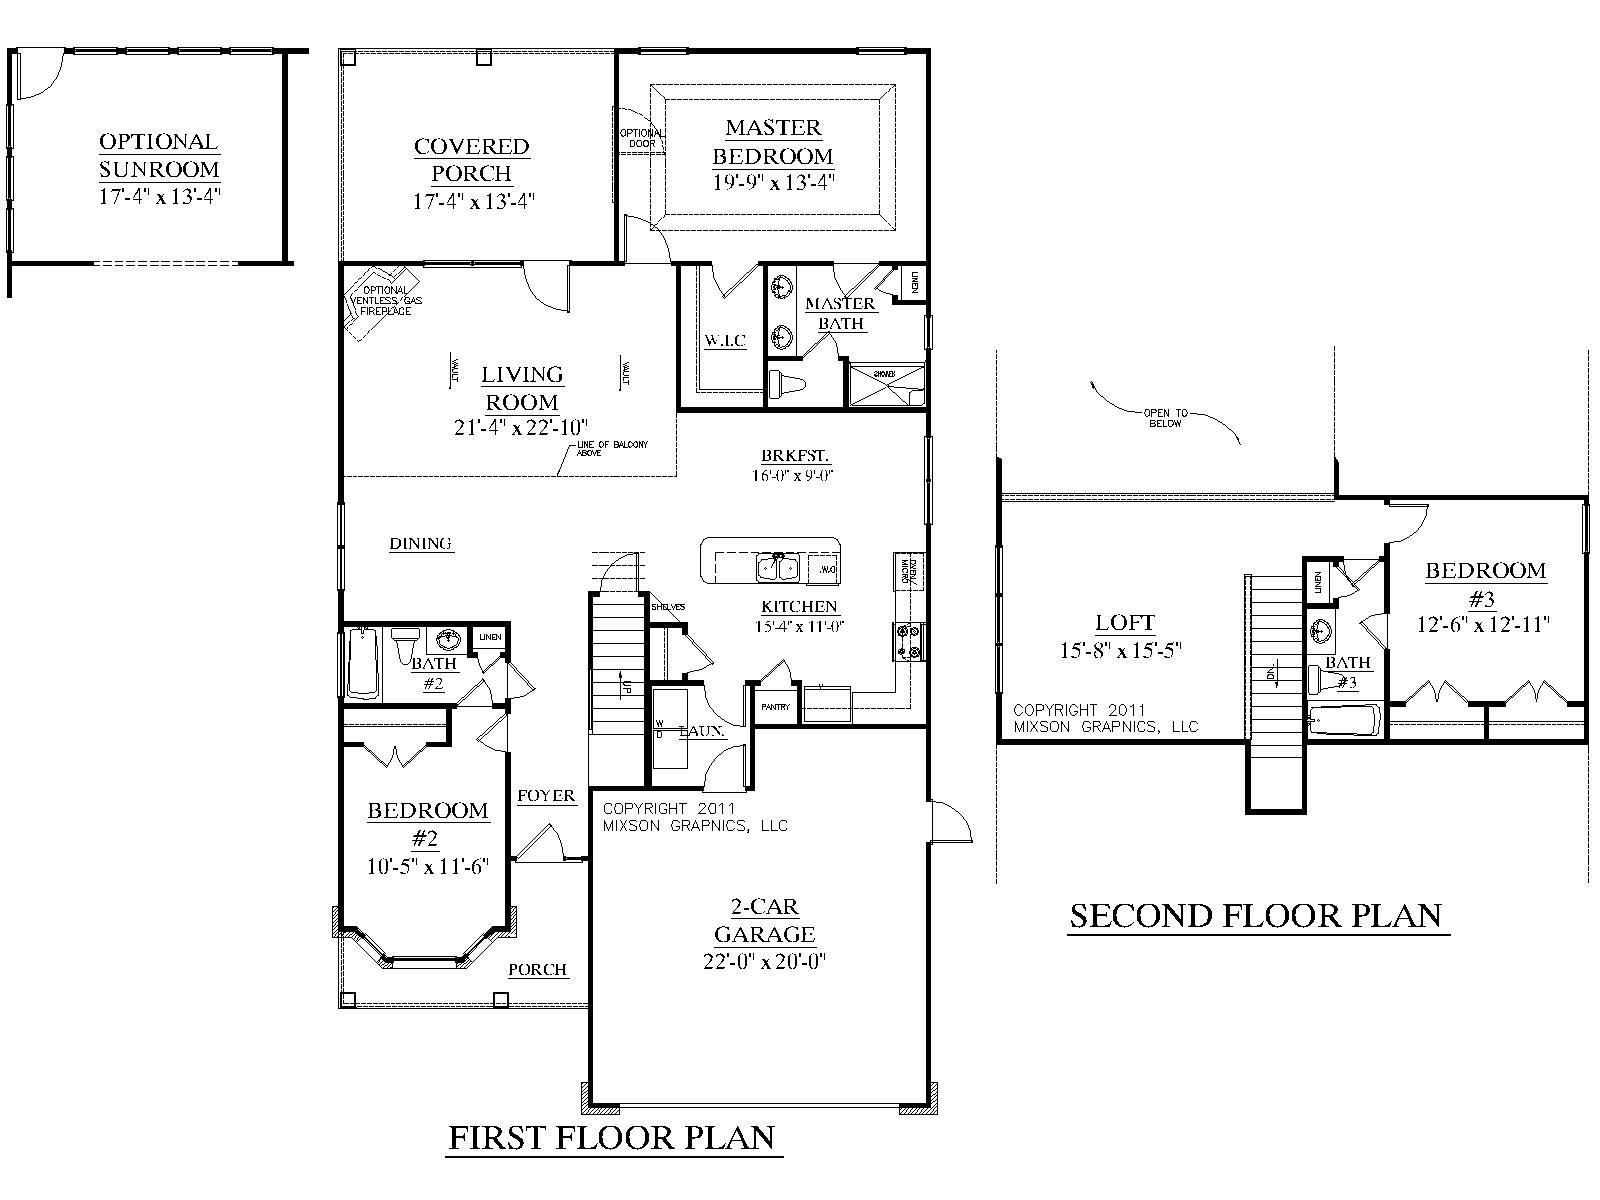 Southern Heritage Home Designs House Plan Dawson 178405 Housing Building Plans Escortsea 22 On Housing Building Plans